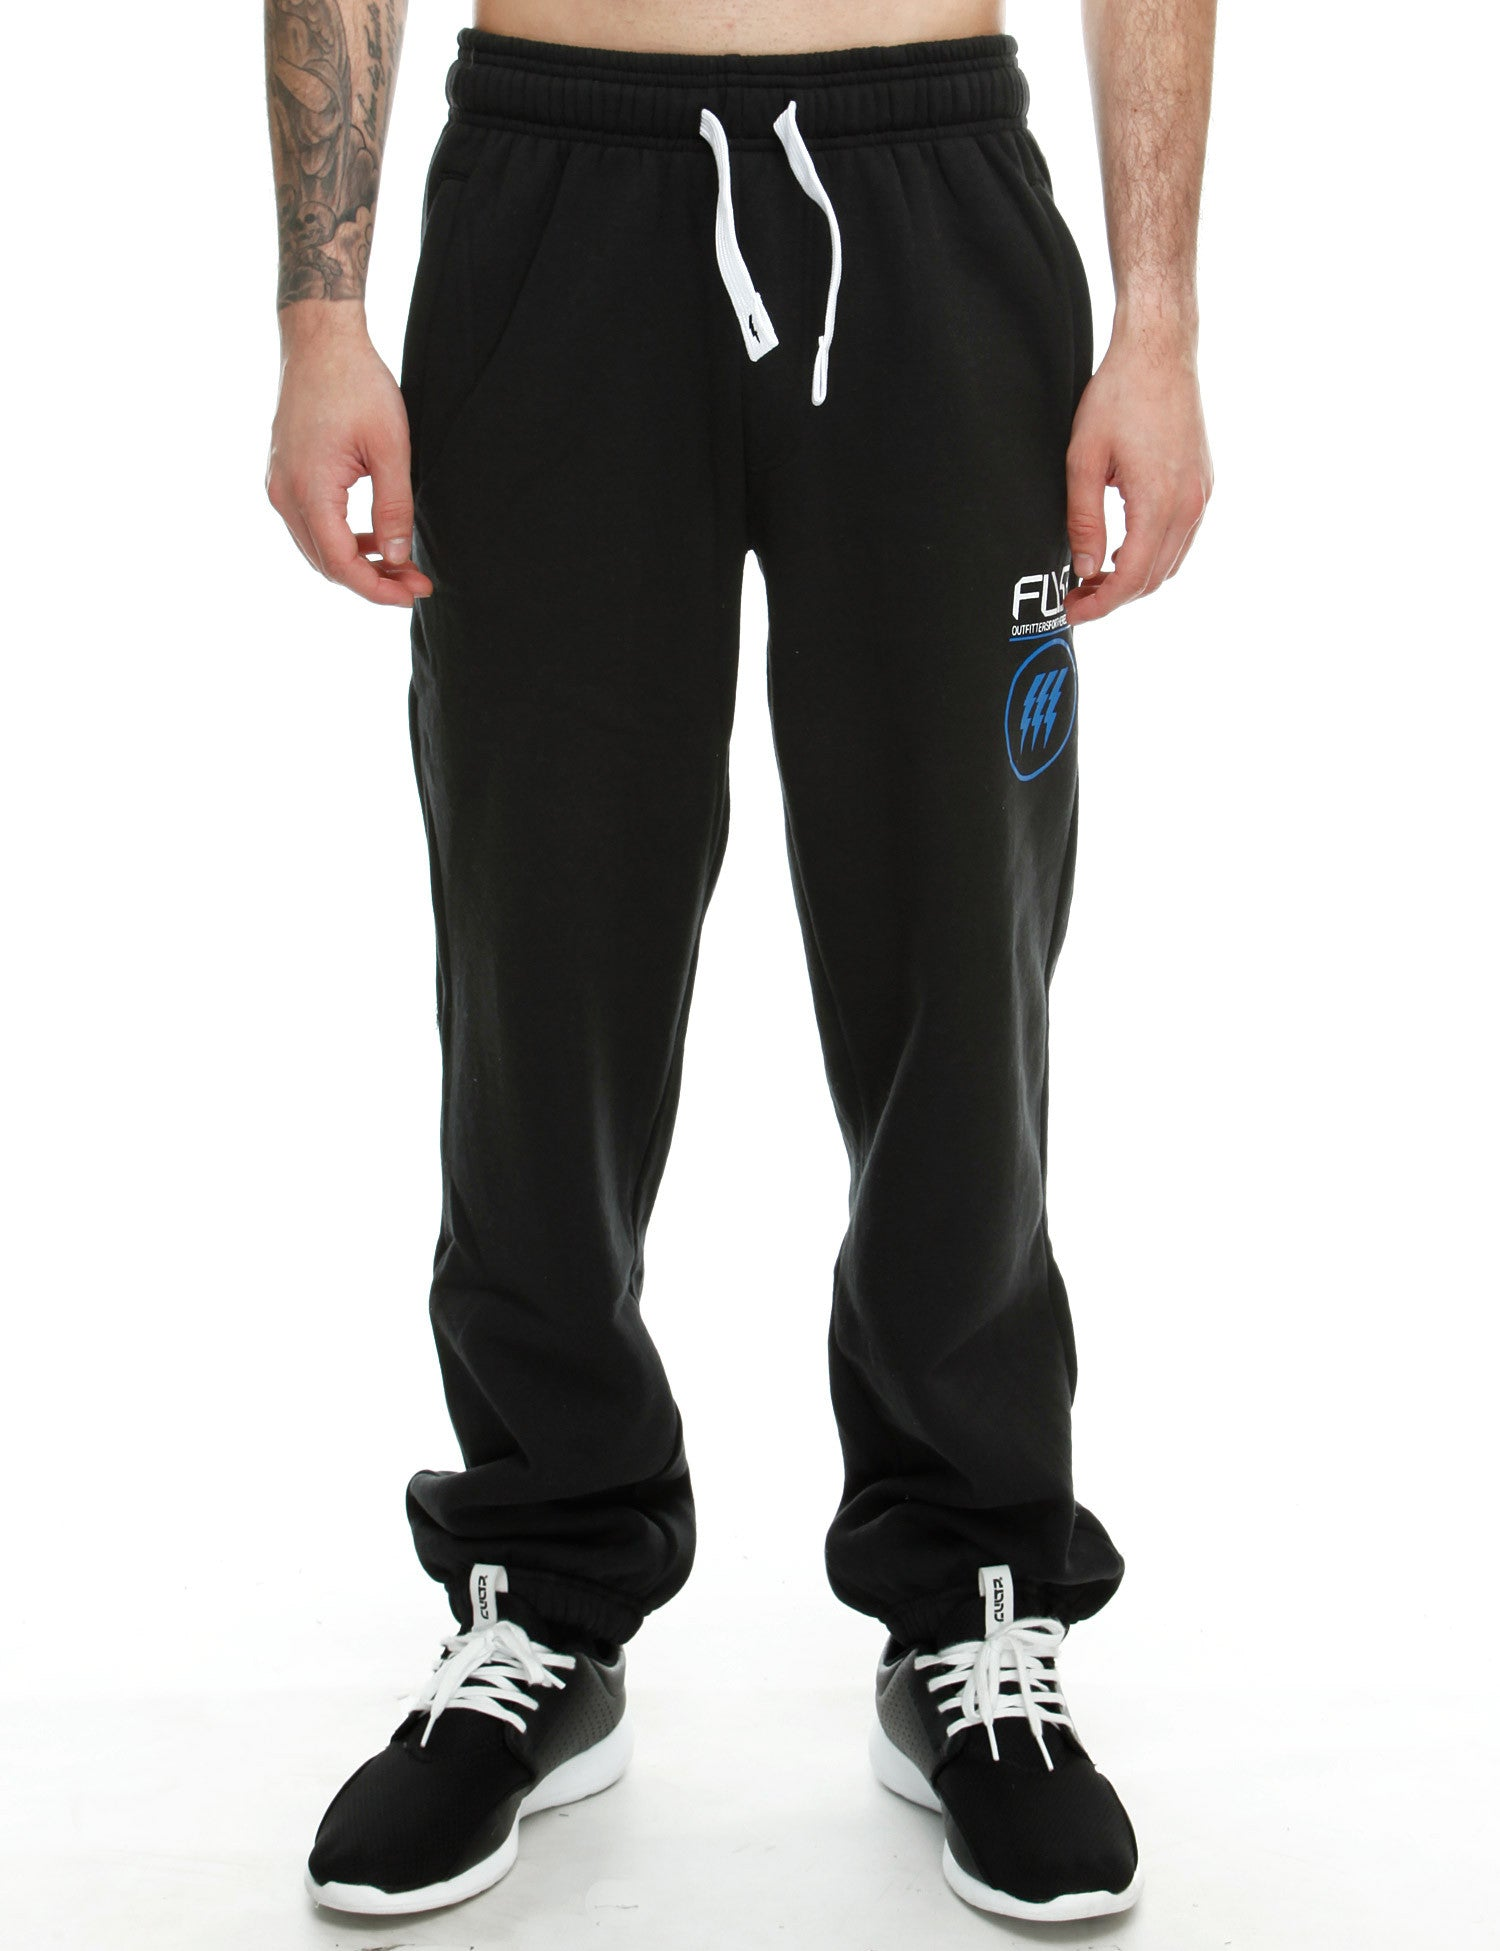 Fly 53 Canary Sweatpant FSK00319 Anthracite Black